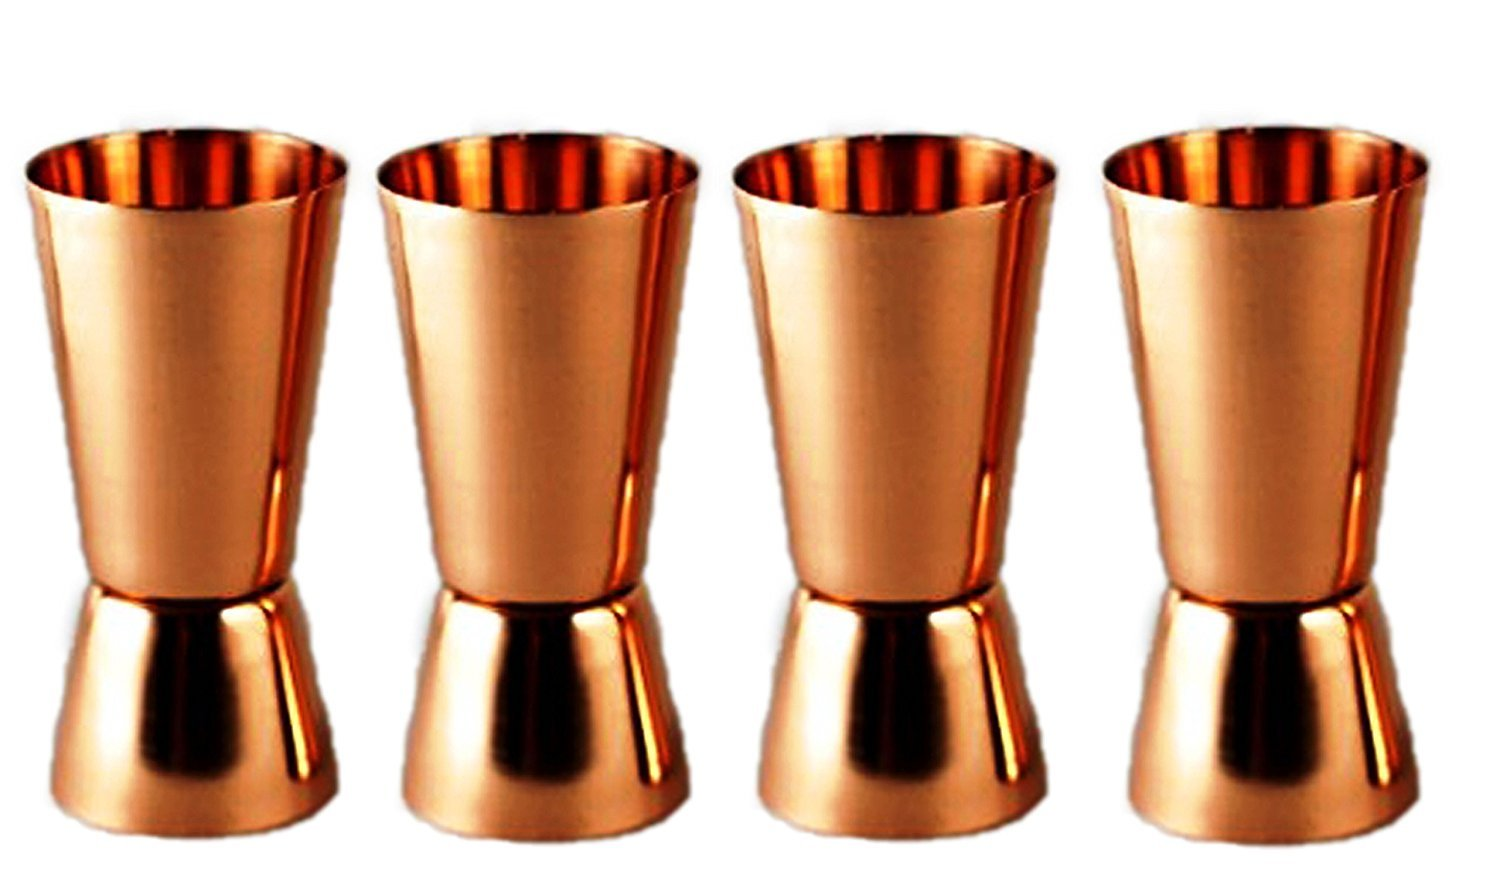 PARIJAT HANDICRAFT Set of 4 Pure Copper Measuring Jigger Shot Glasses Double Sided Jiggers - 2 Ounce and 1 Ounce. by PARIJAT HANDICRAFT (Image #1)